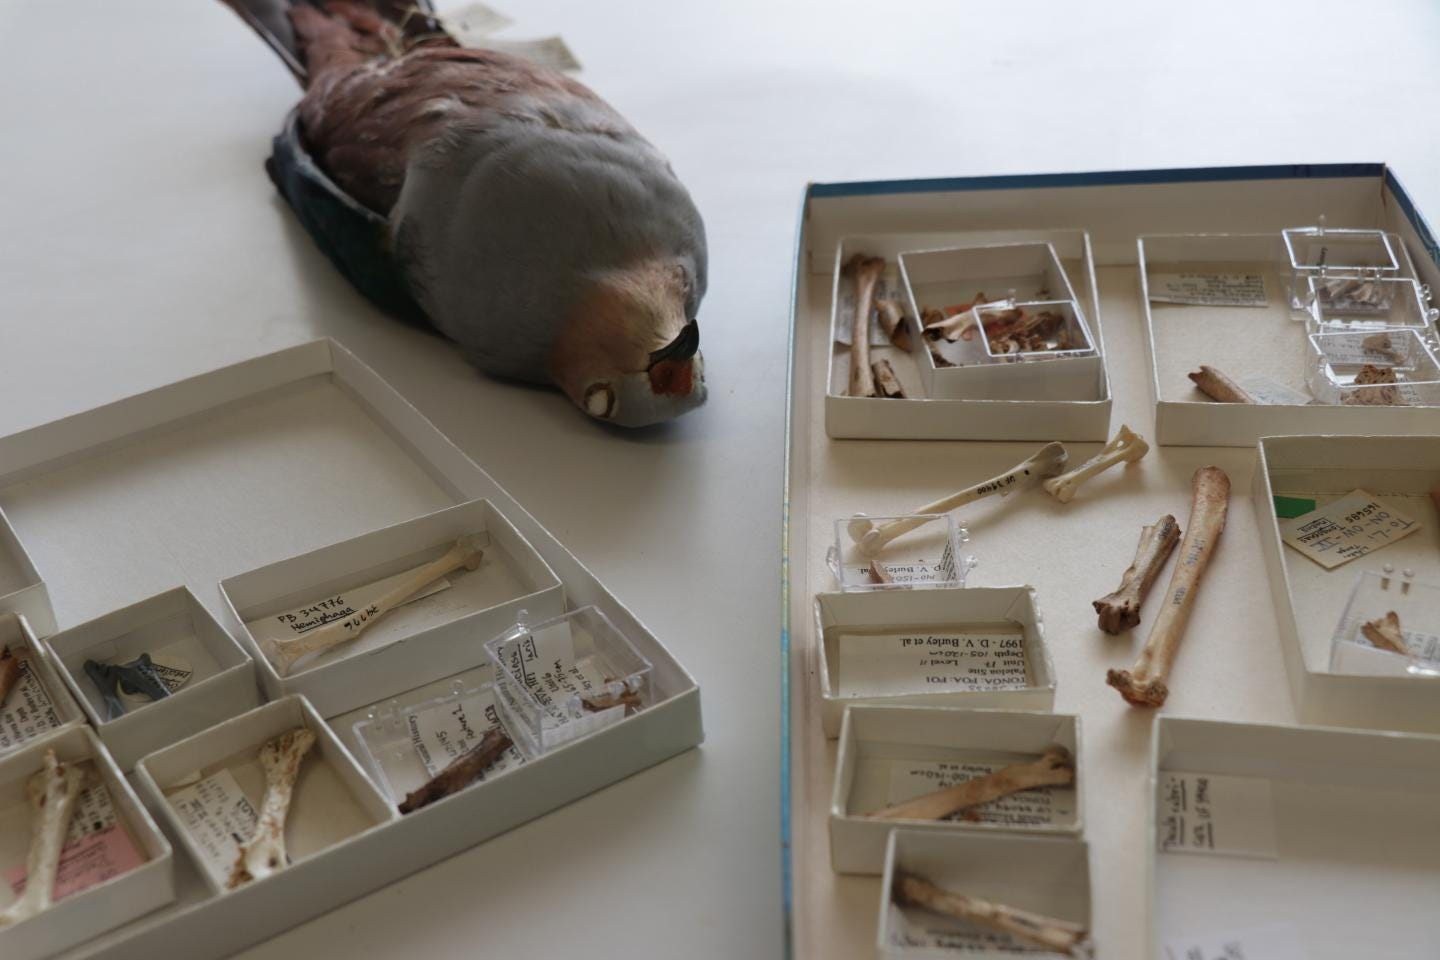 Dead pigeon and bones in boxes